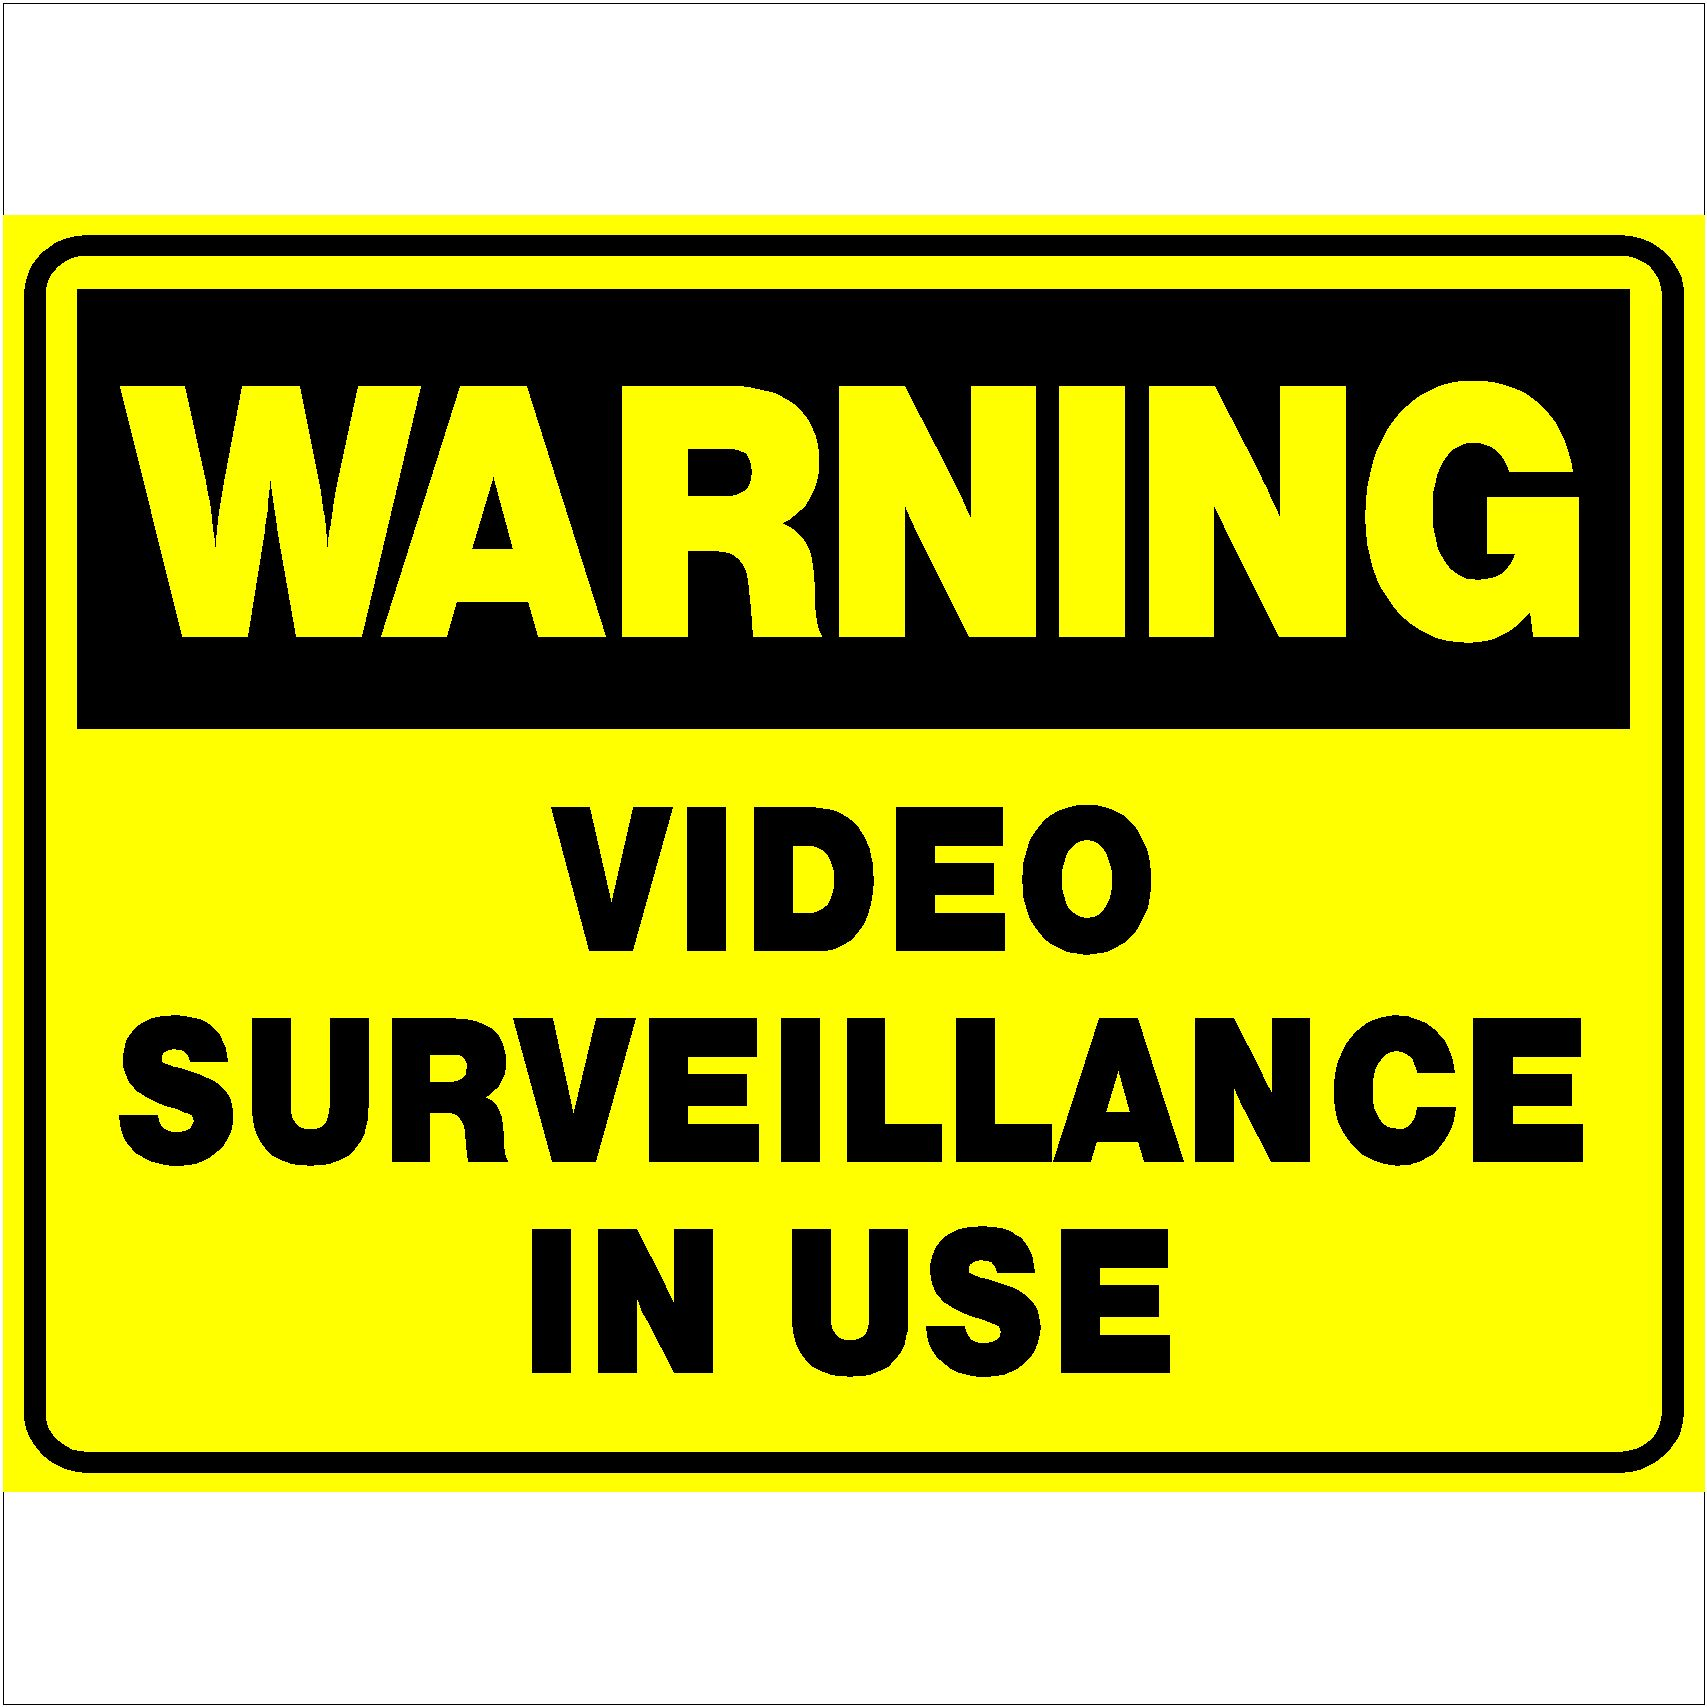 Warning Video Surveillance In Use